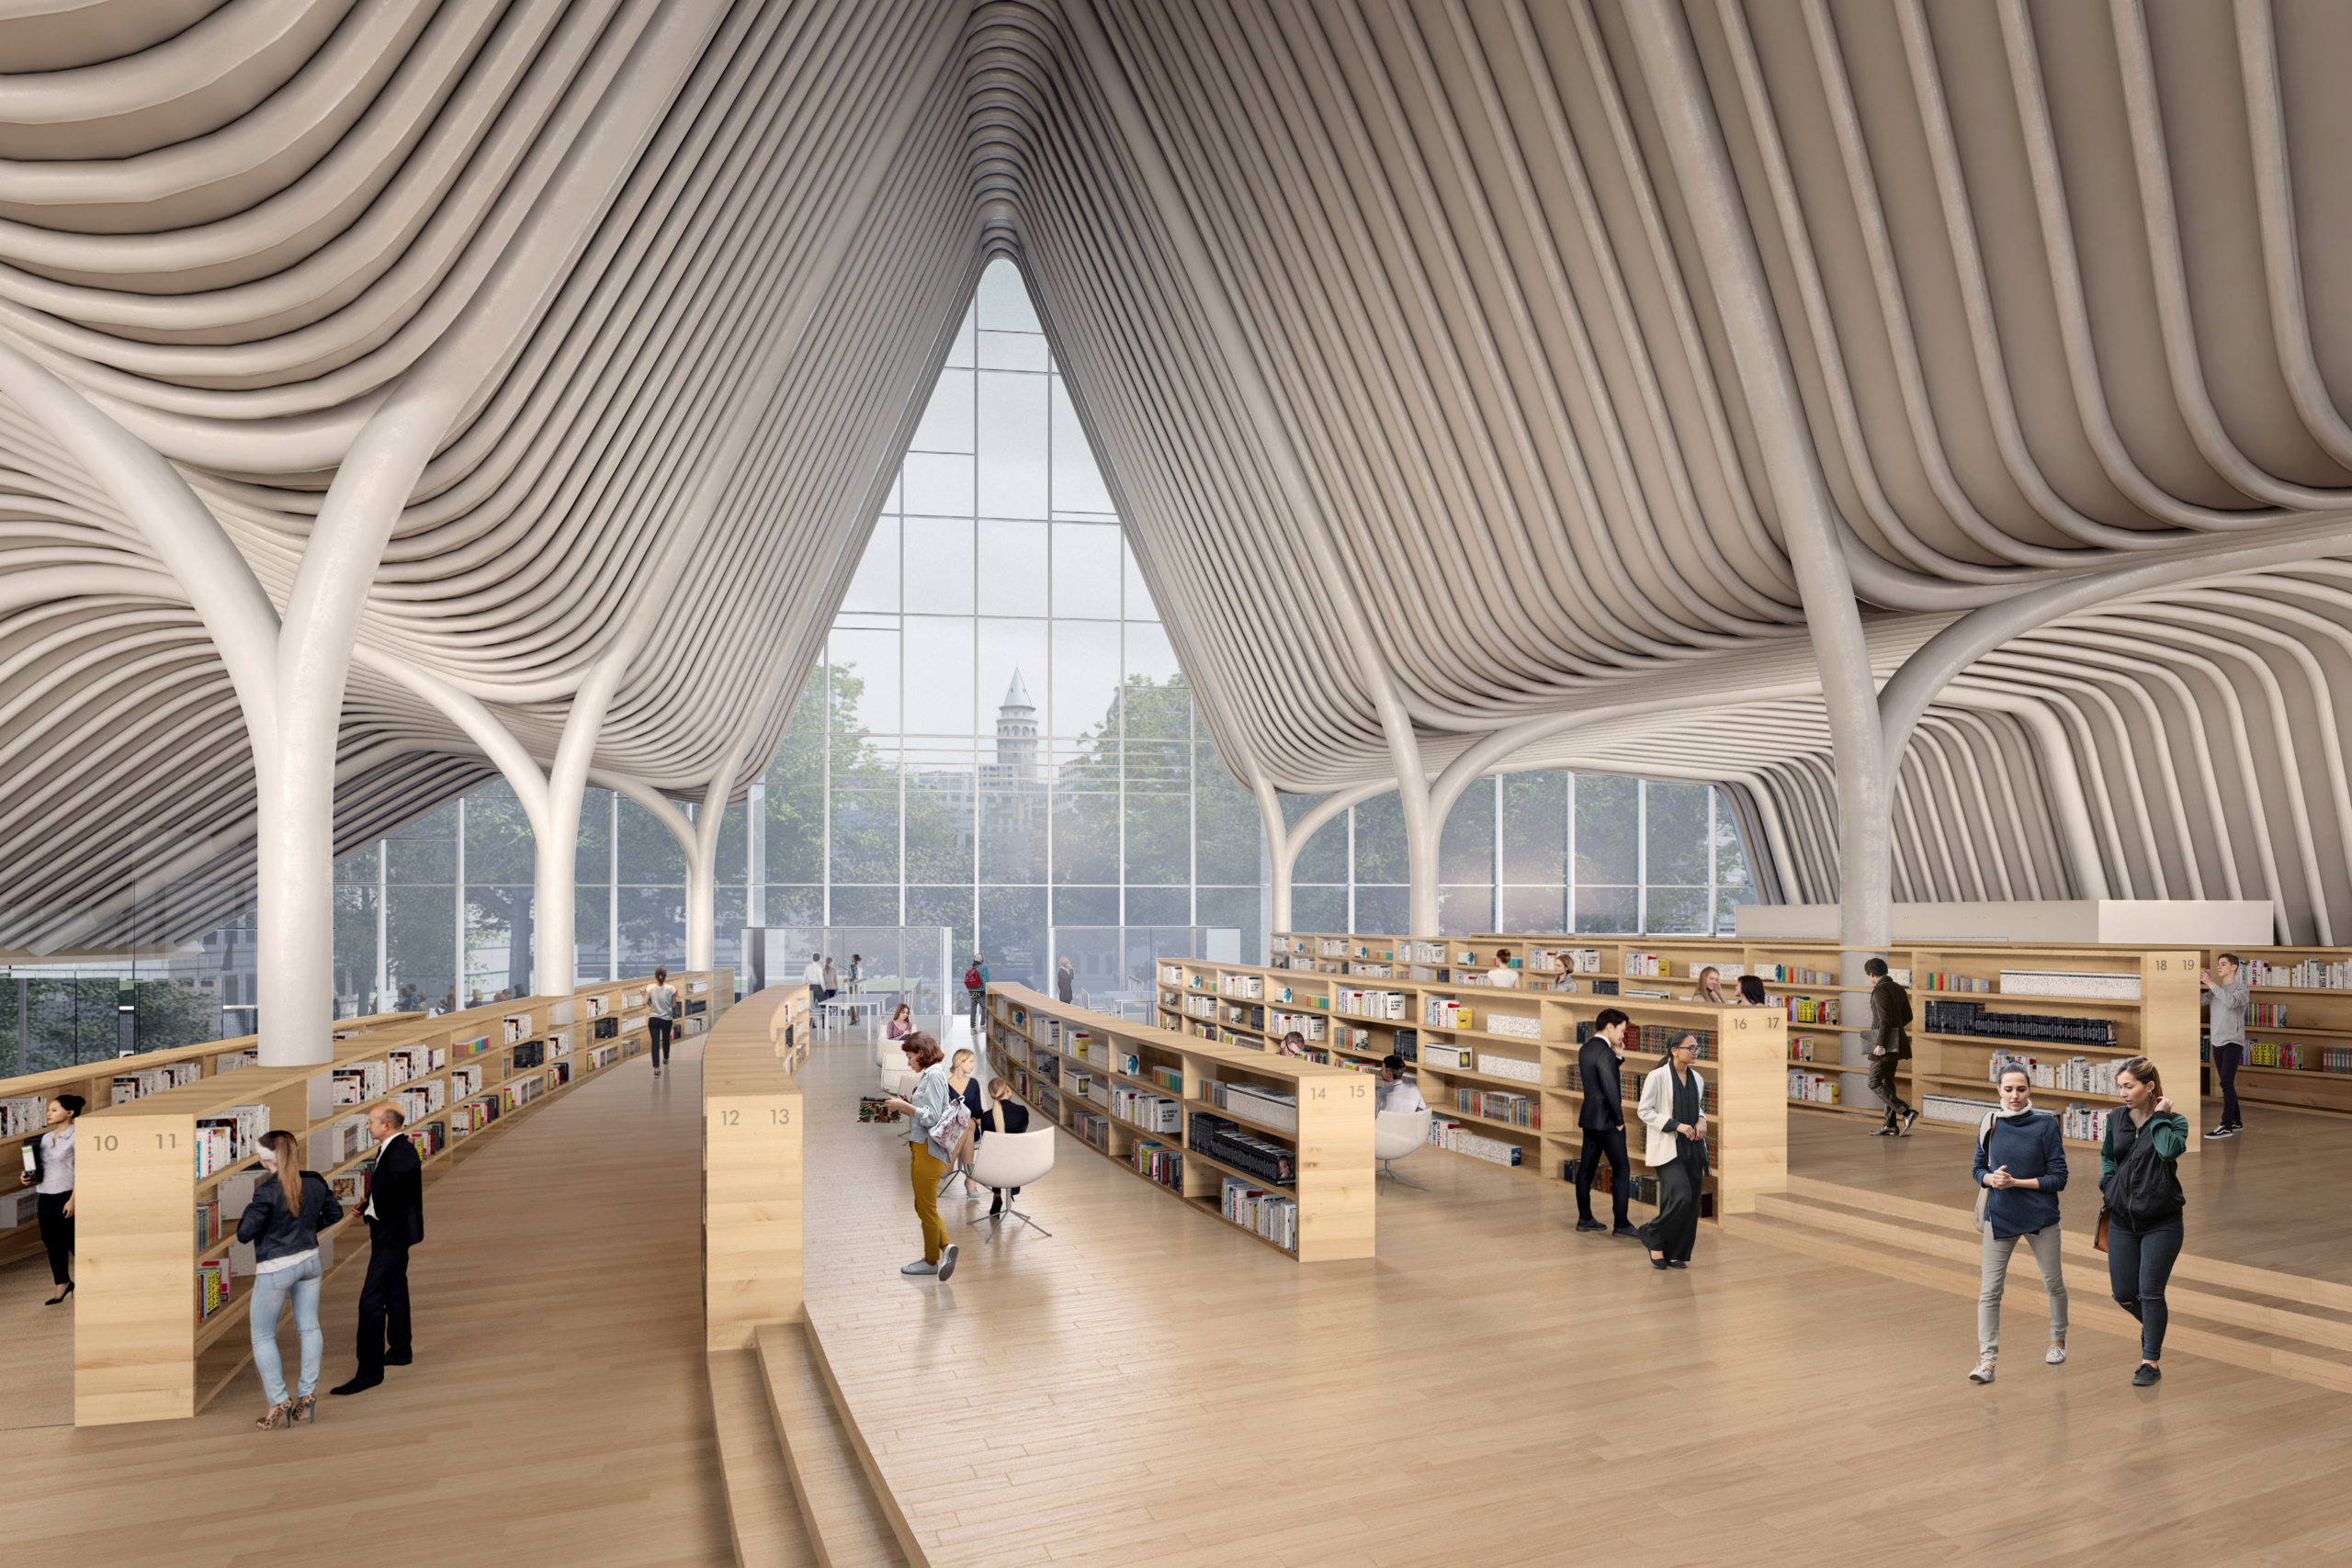 The Golden Horn Library by Aytac Architects, Istanbul, Turkey